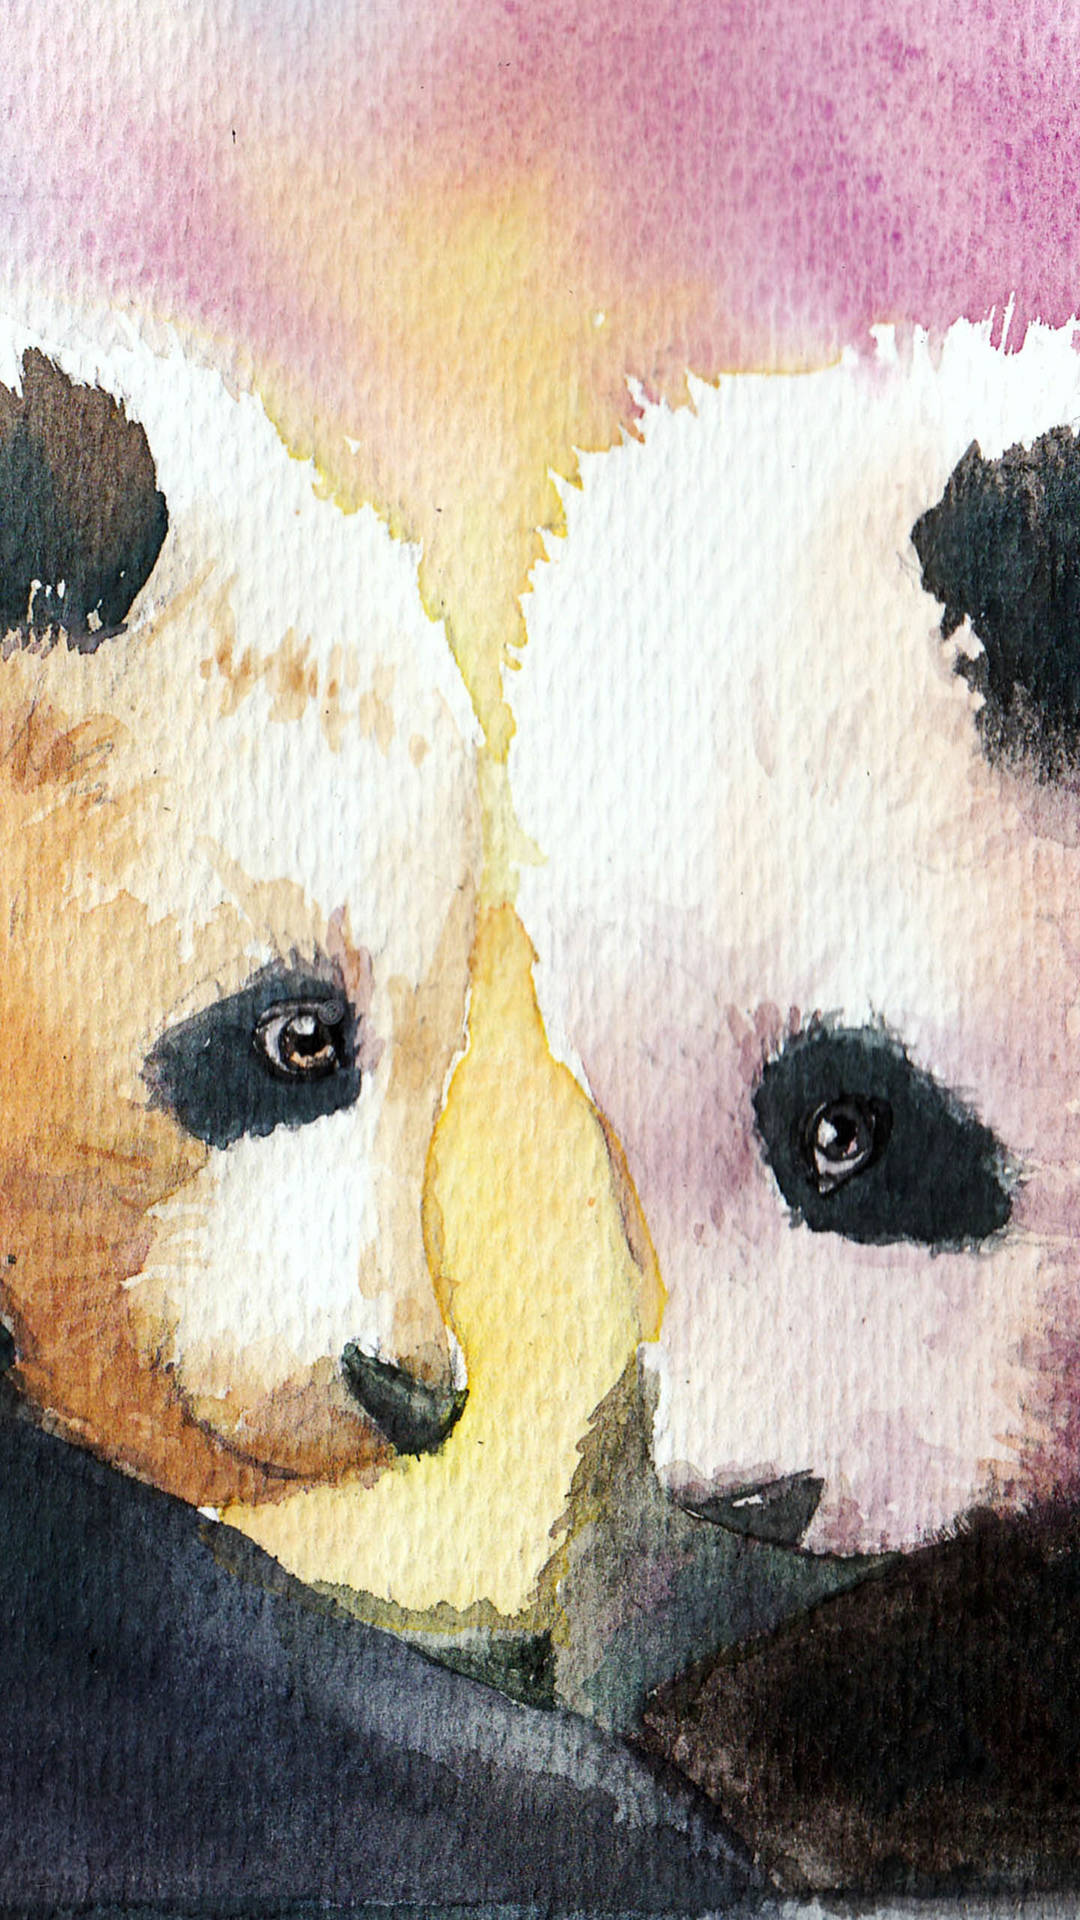 wallpaper de pandas bonitos